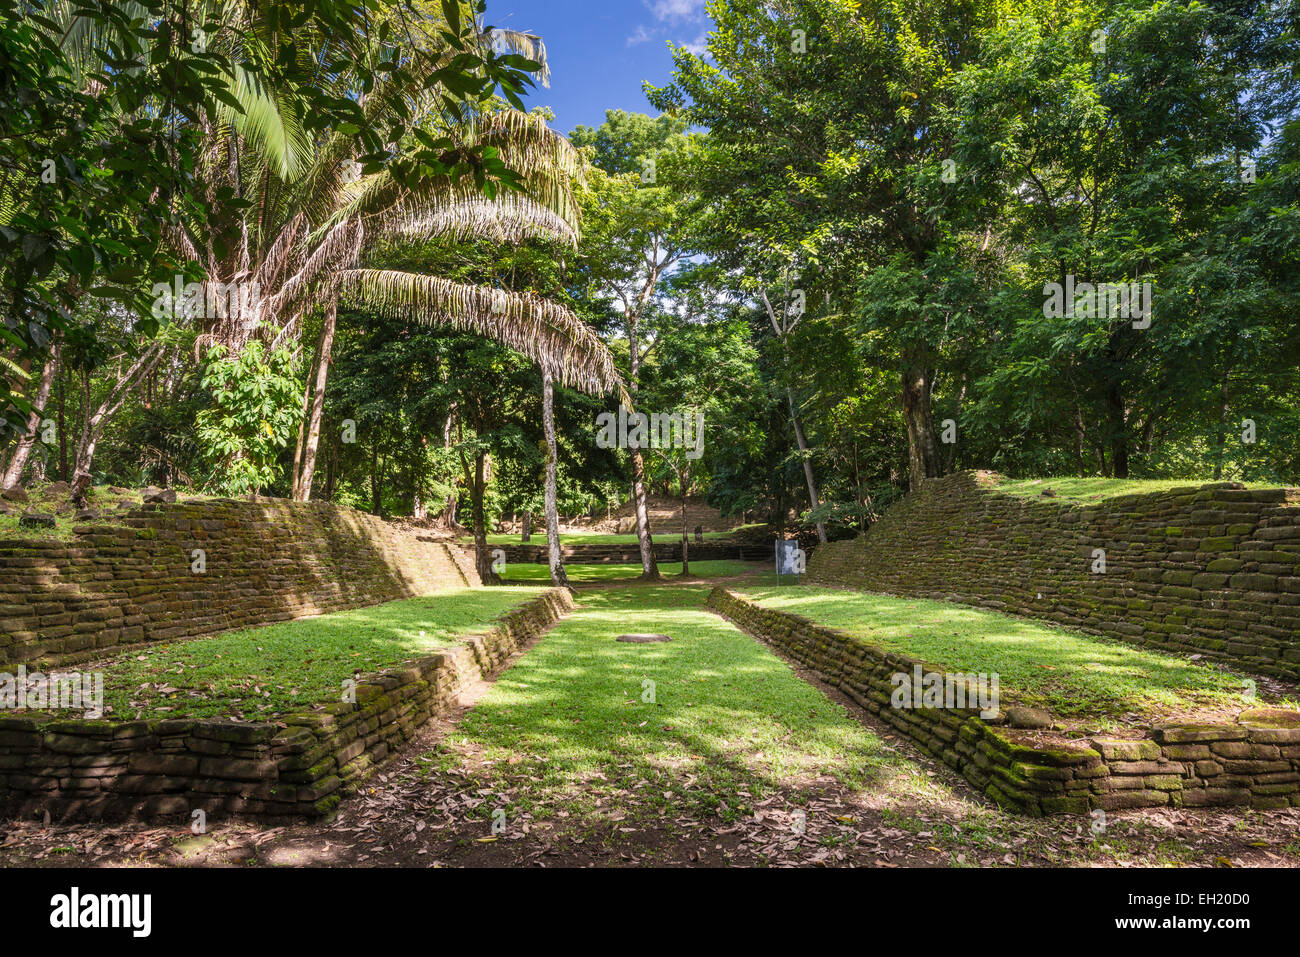 Ballcourt at Nim Li Punit, Maya ruins, rainforest, Southern Highway, Toledo District, Belize - Stock Image